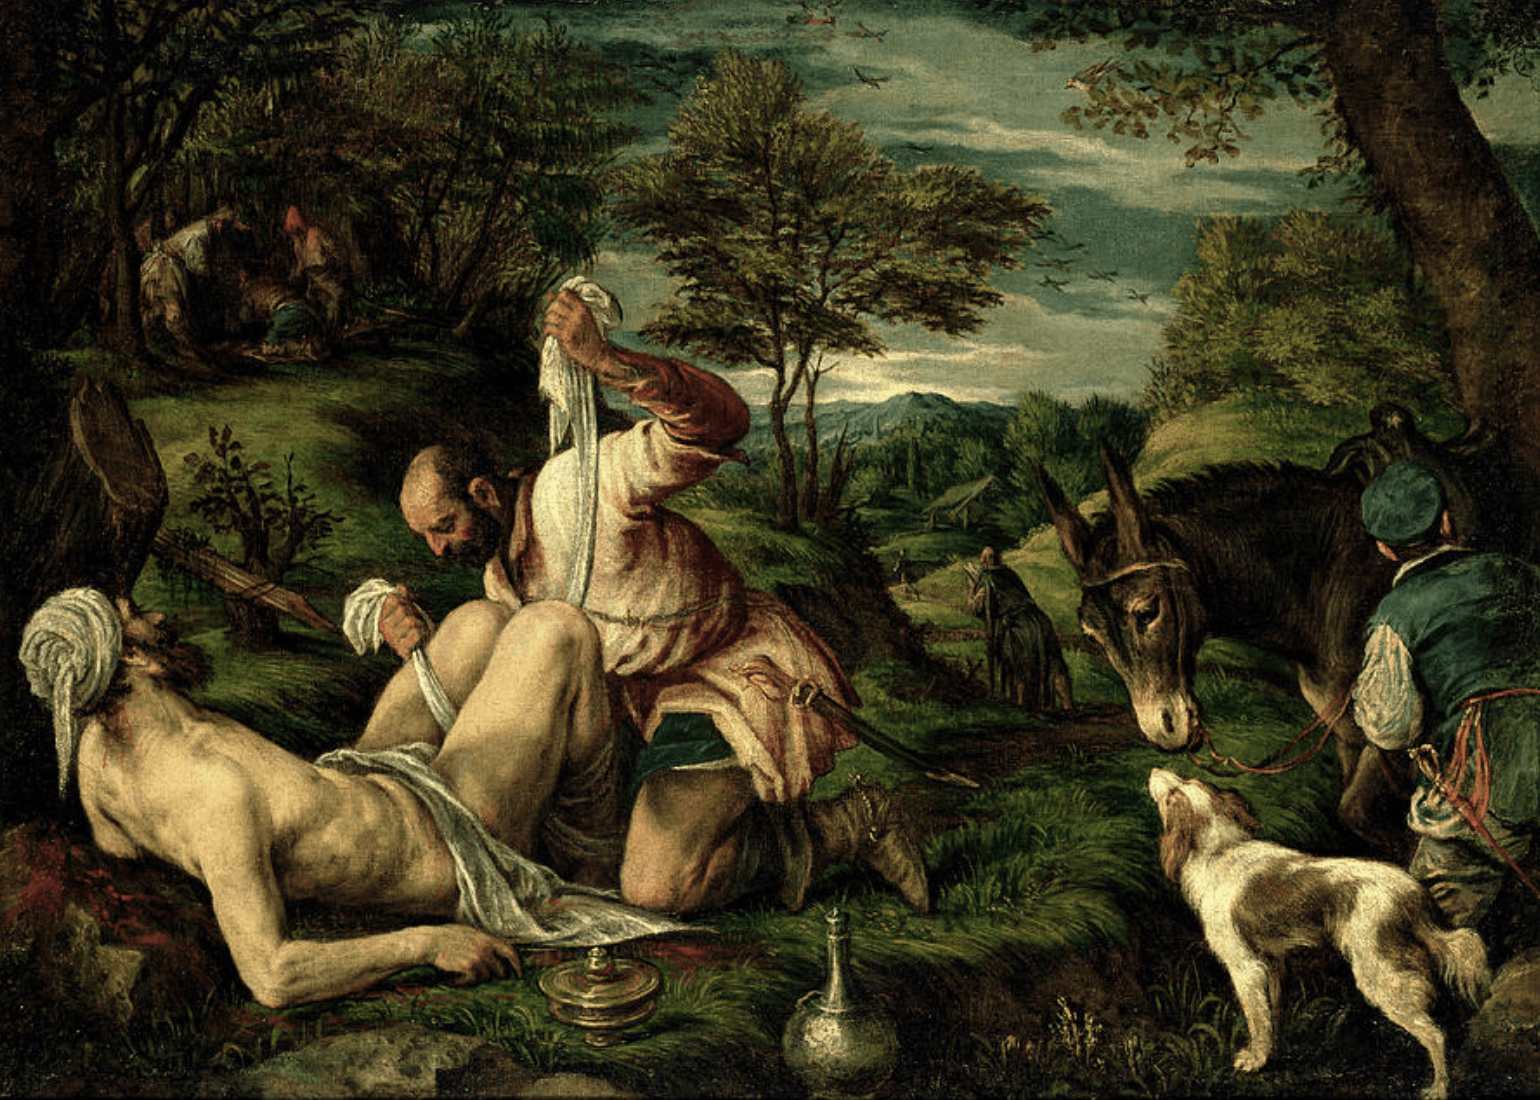 A HELPING HAND: Detail from the Parable Of The Good Samaritan, by Francesco Bassano